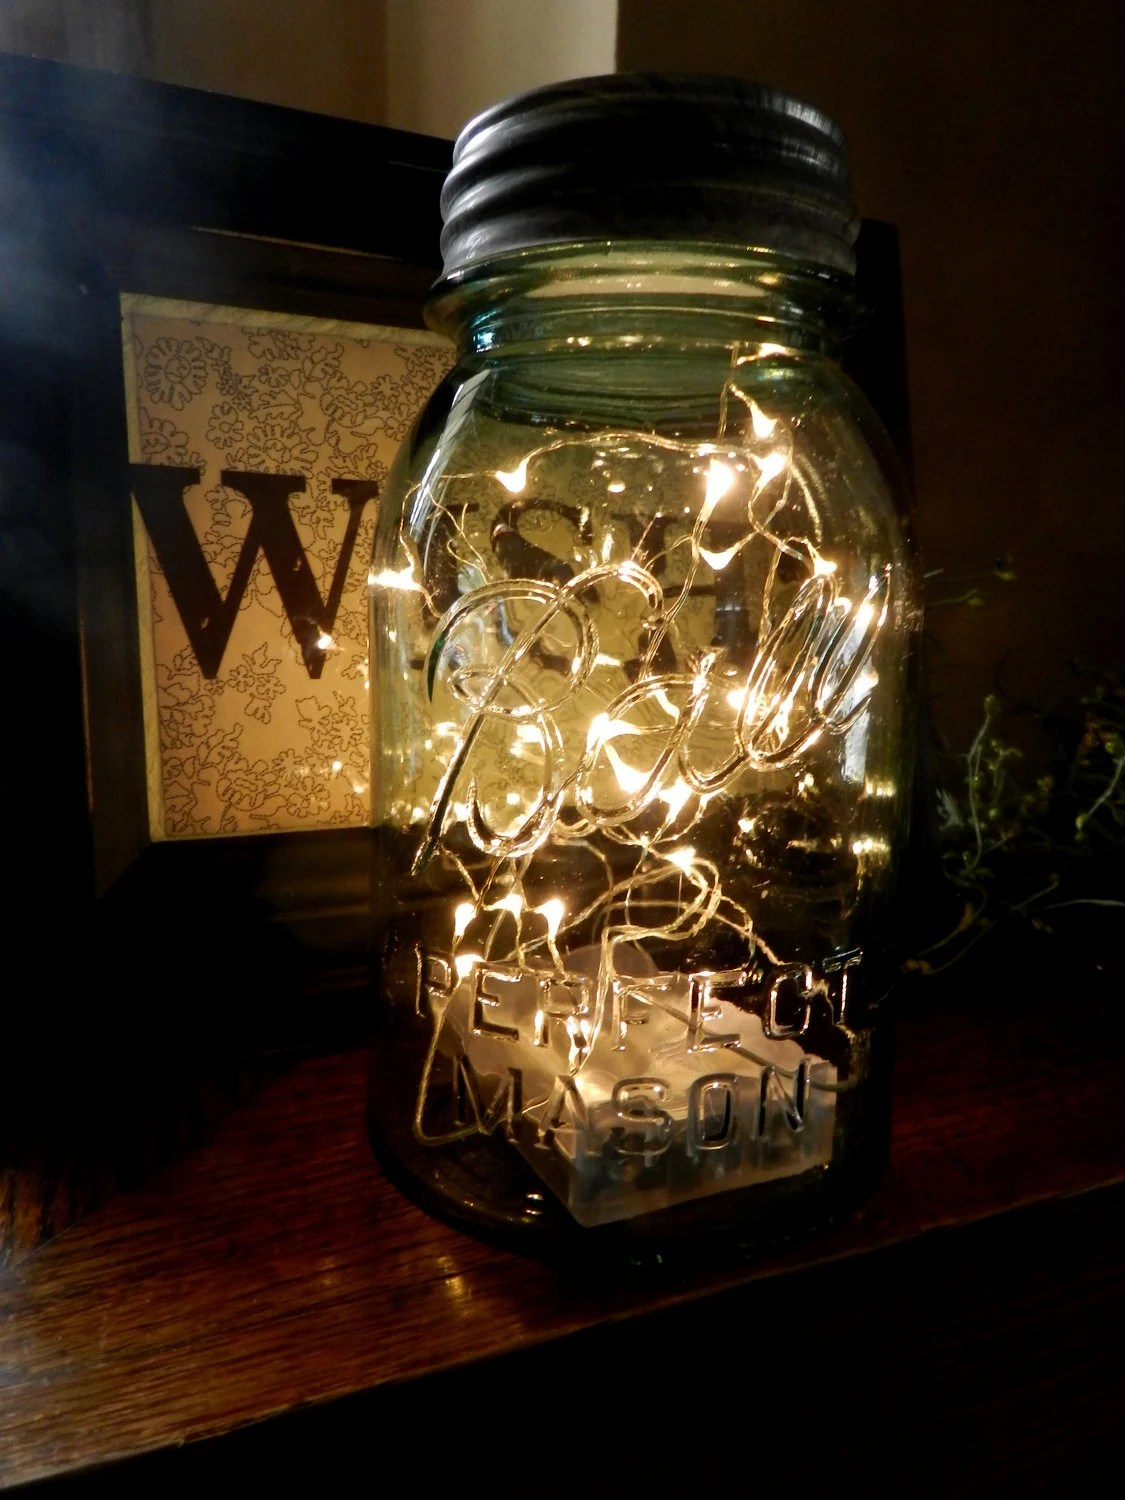 Fall String Lights Wallpaper Weddings Fireflies In A Mason Jar Led Battery Operated Lighted Vintage